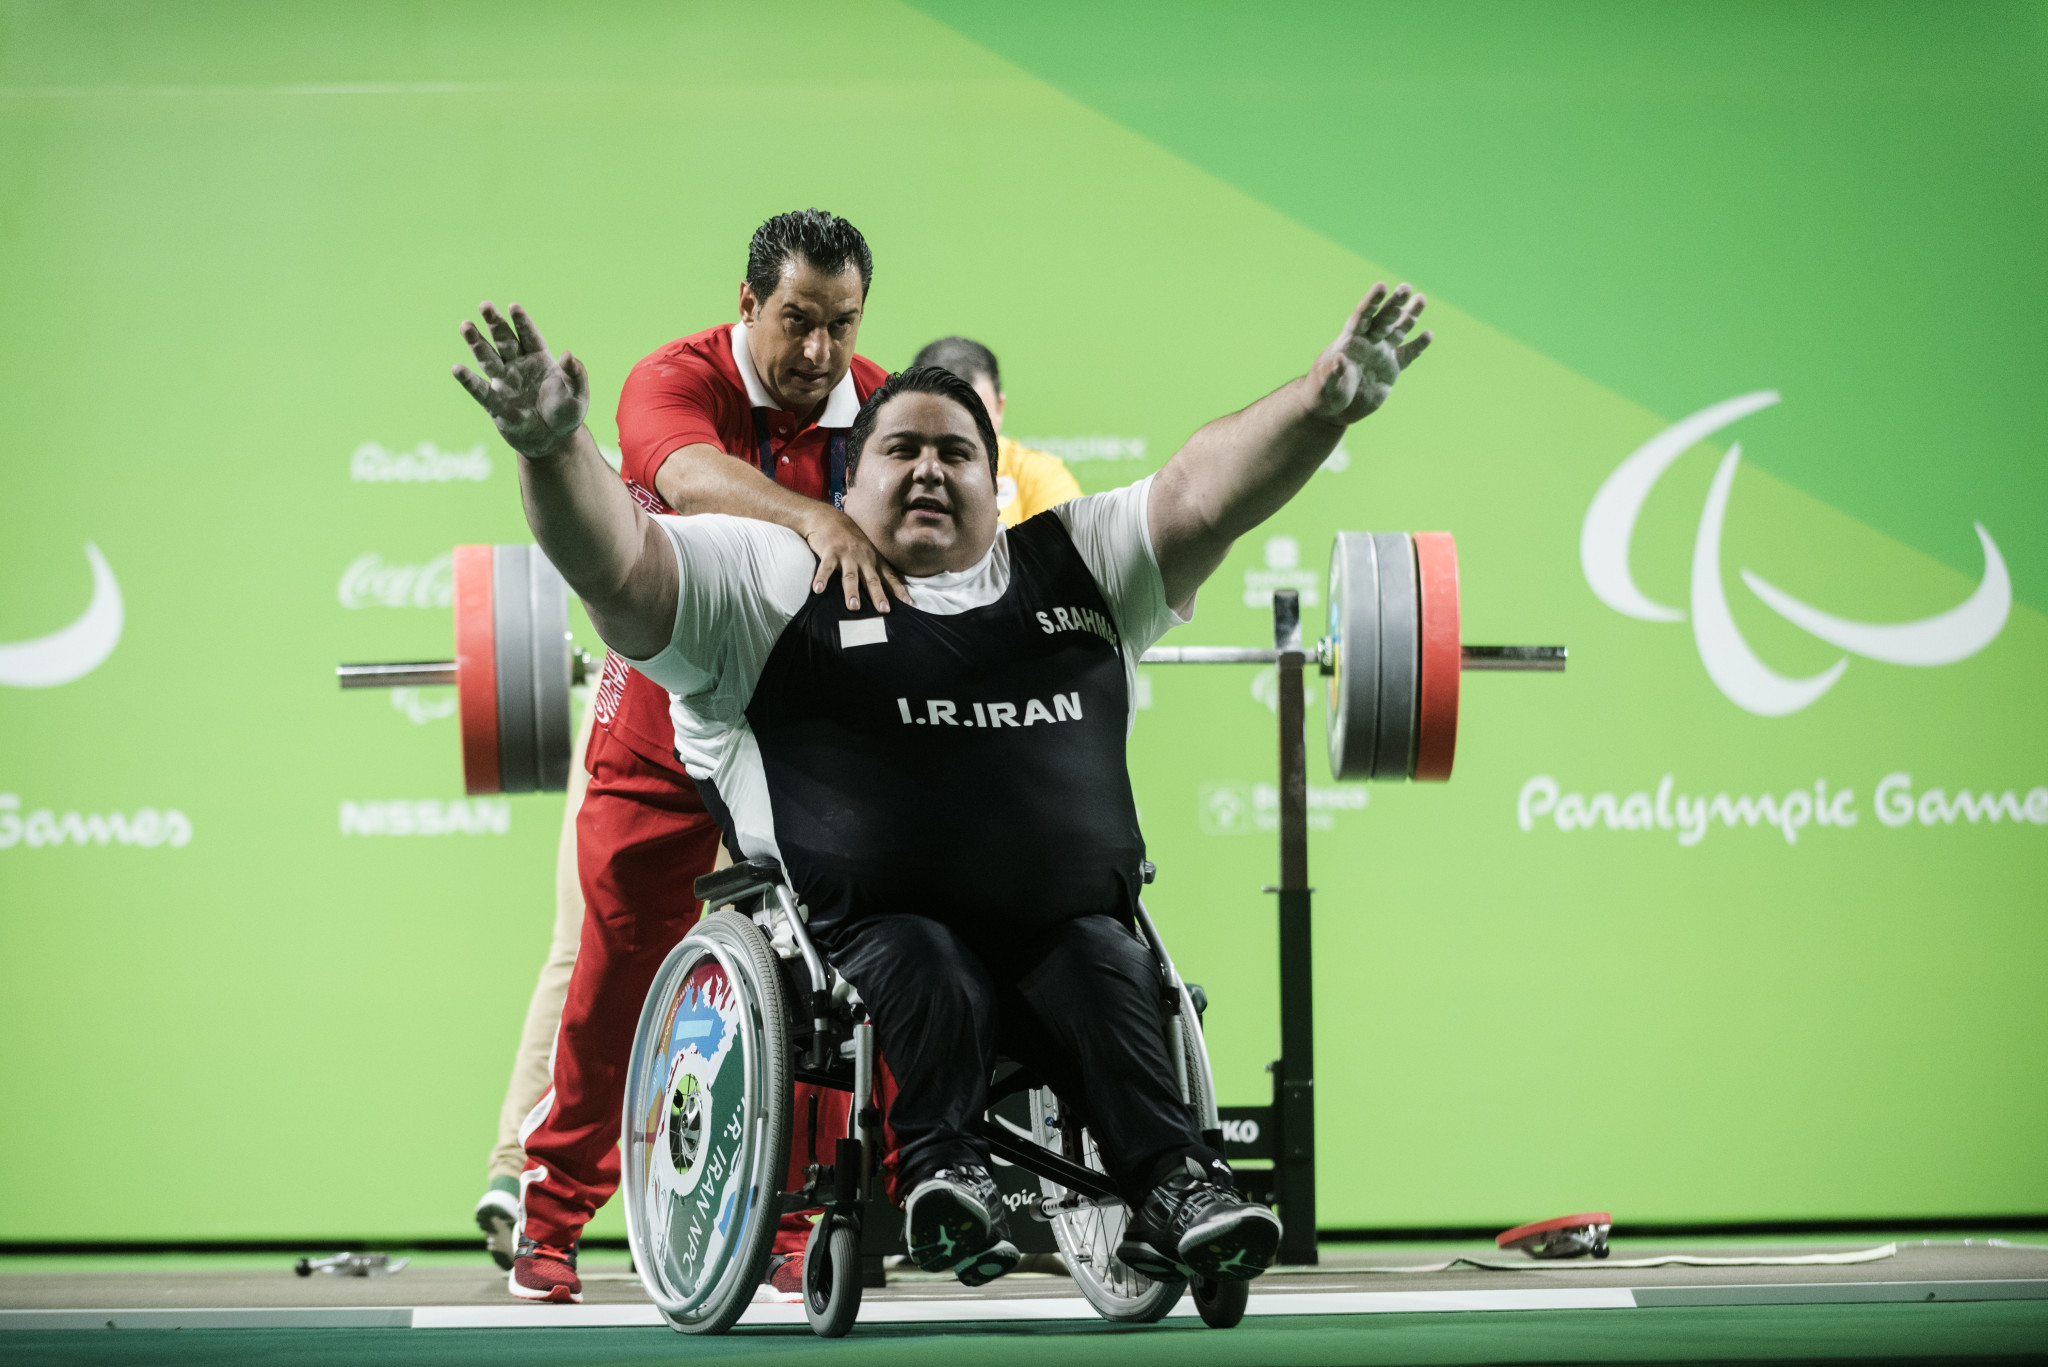 The world's strongest Paralympian Siamand Rahman will be in action in Japan ©Getty Images